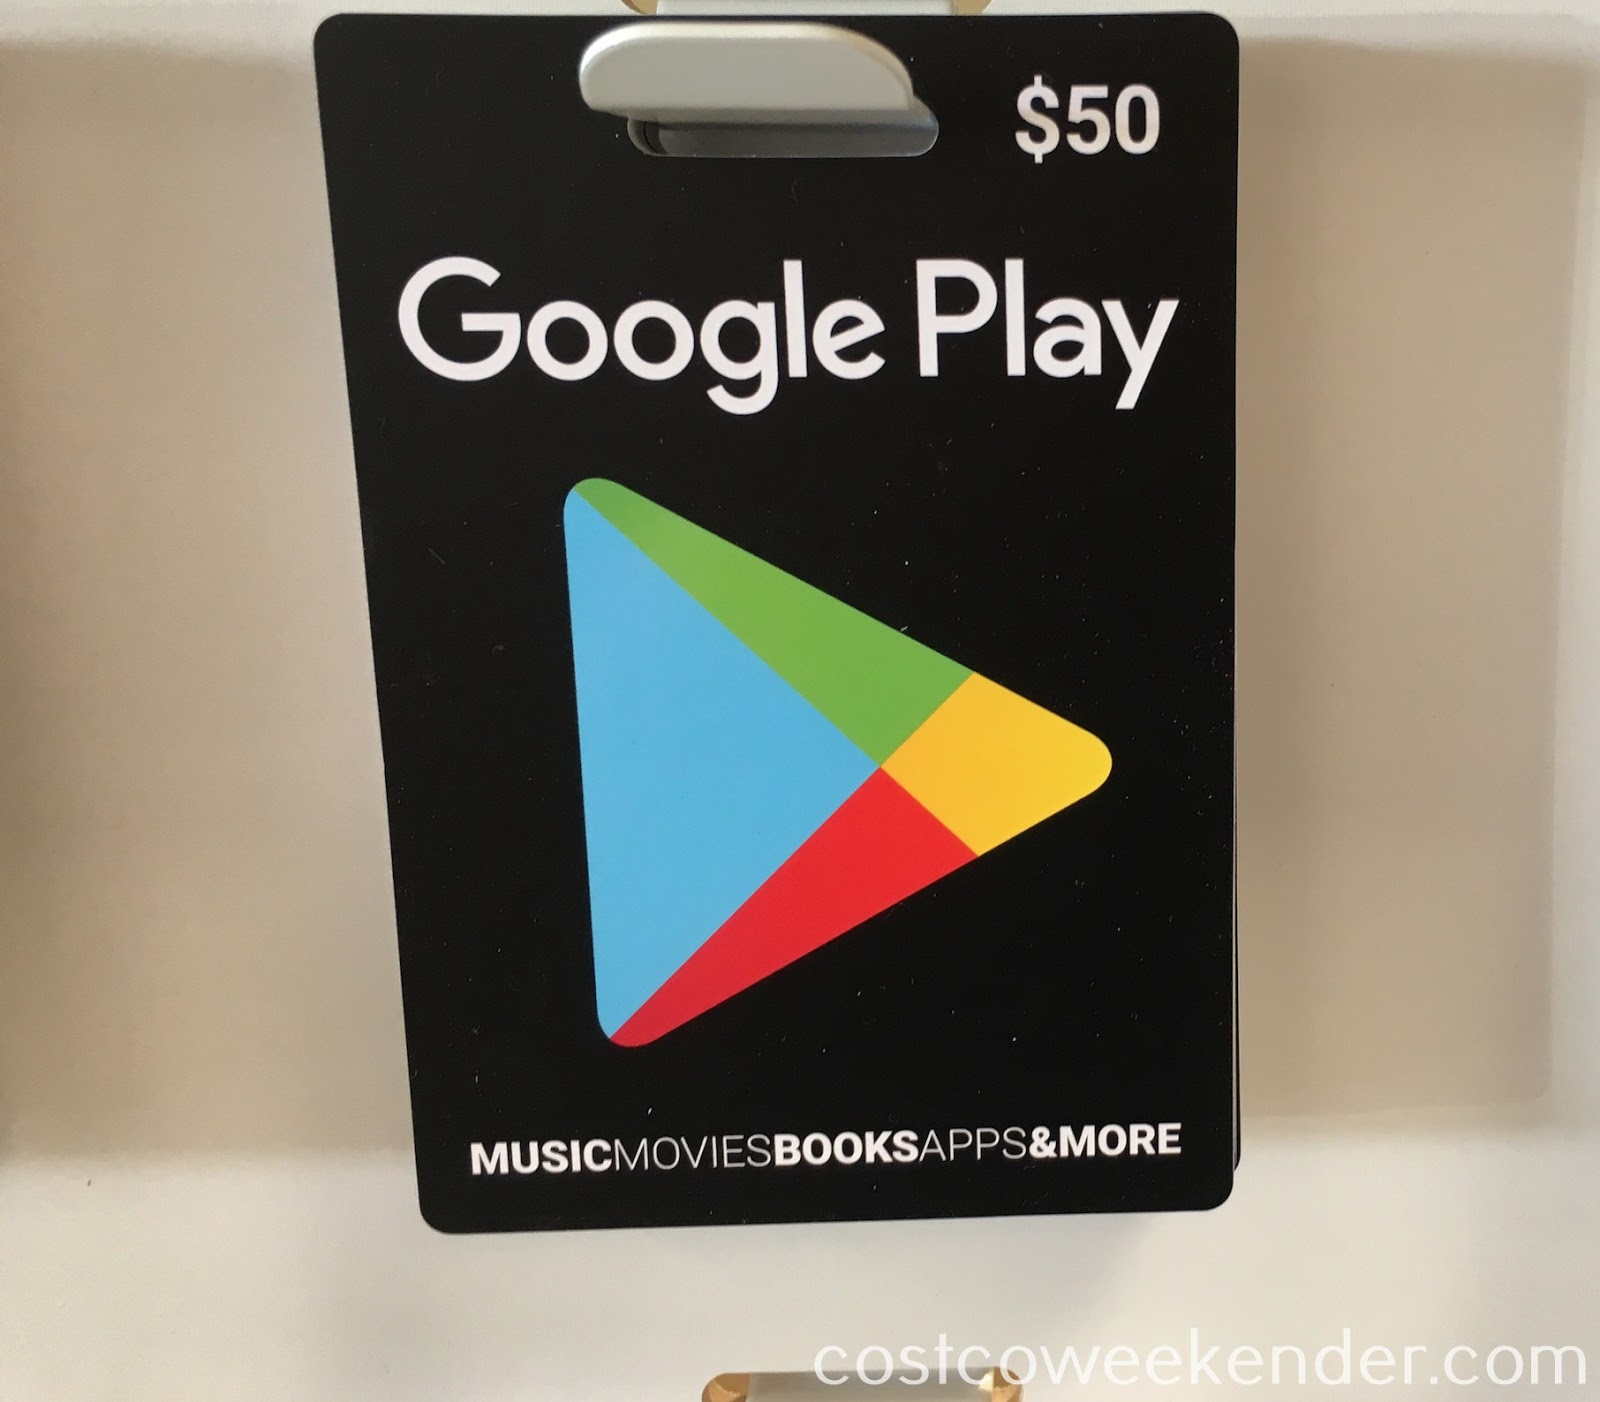 Get a jump on the holiday gift-giving season with the Google Play $50 Gift Card